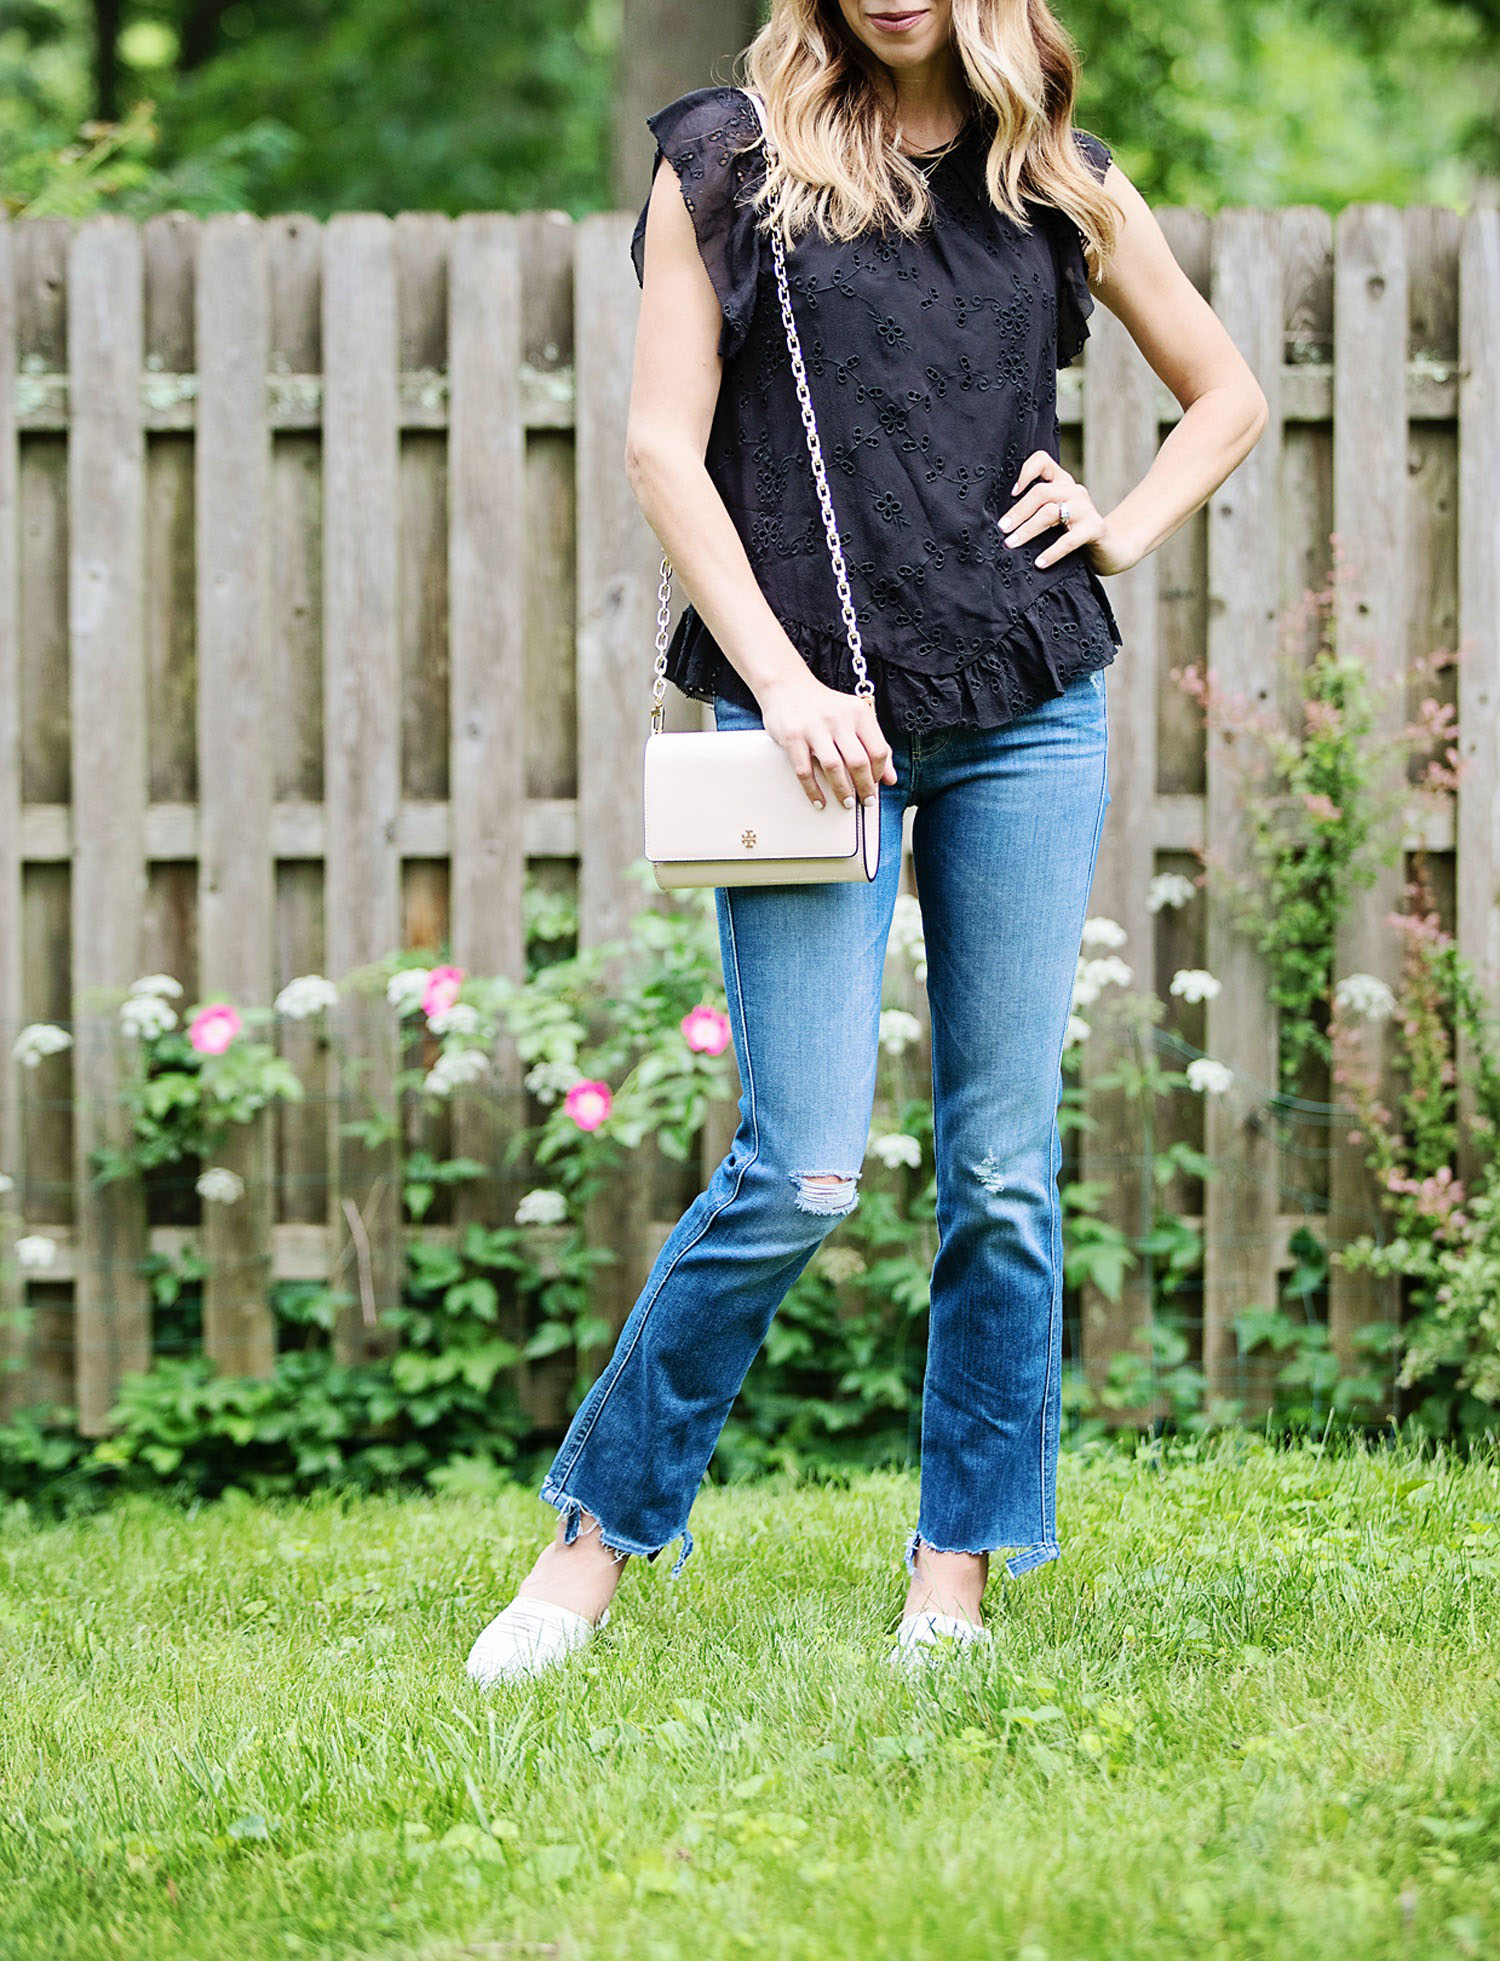 The Motherchic wearing joie top and mother jeans from Saks